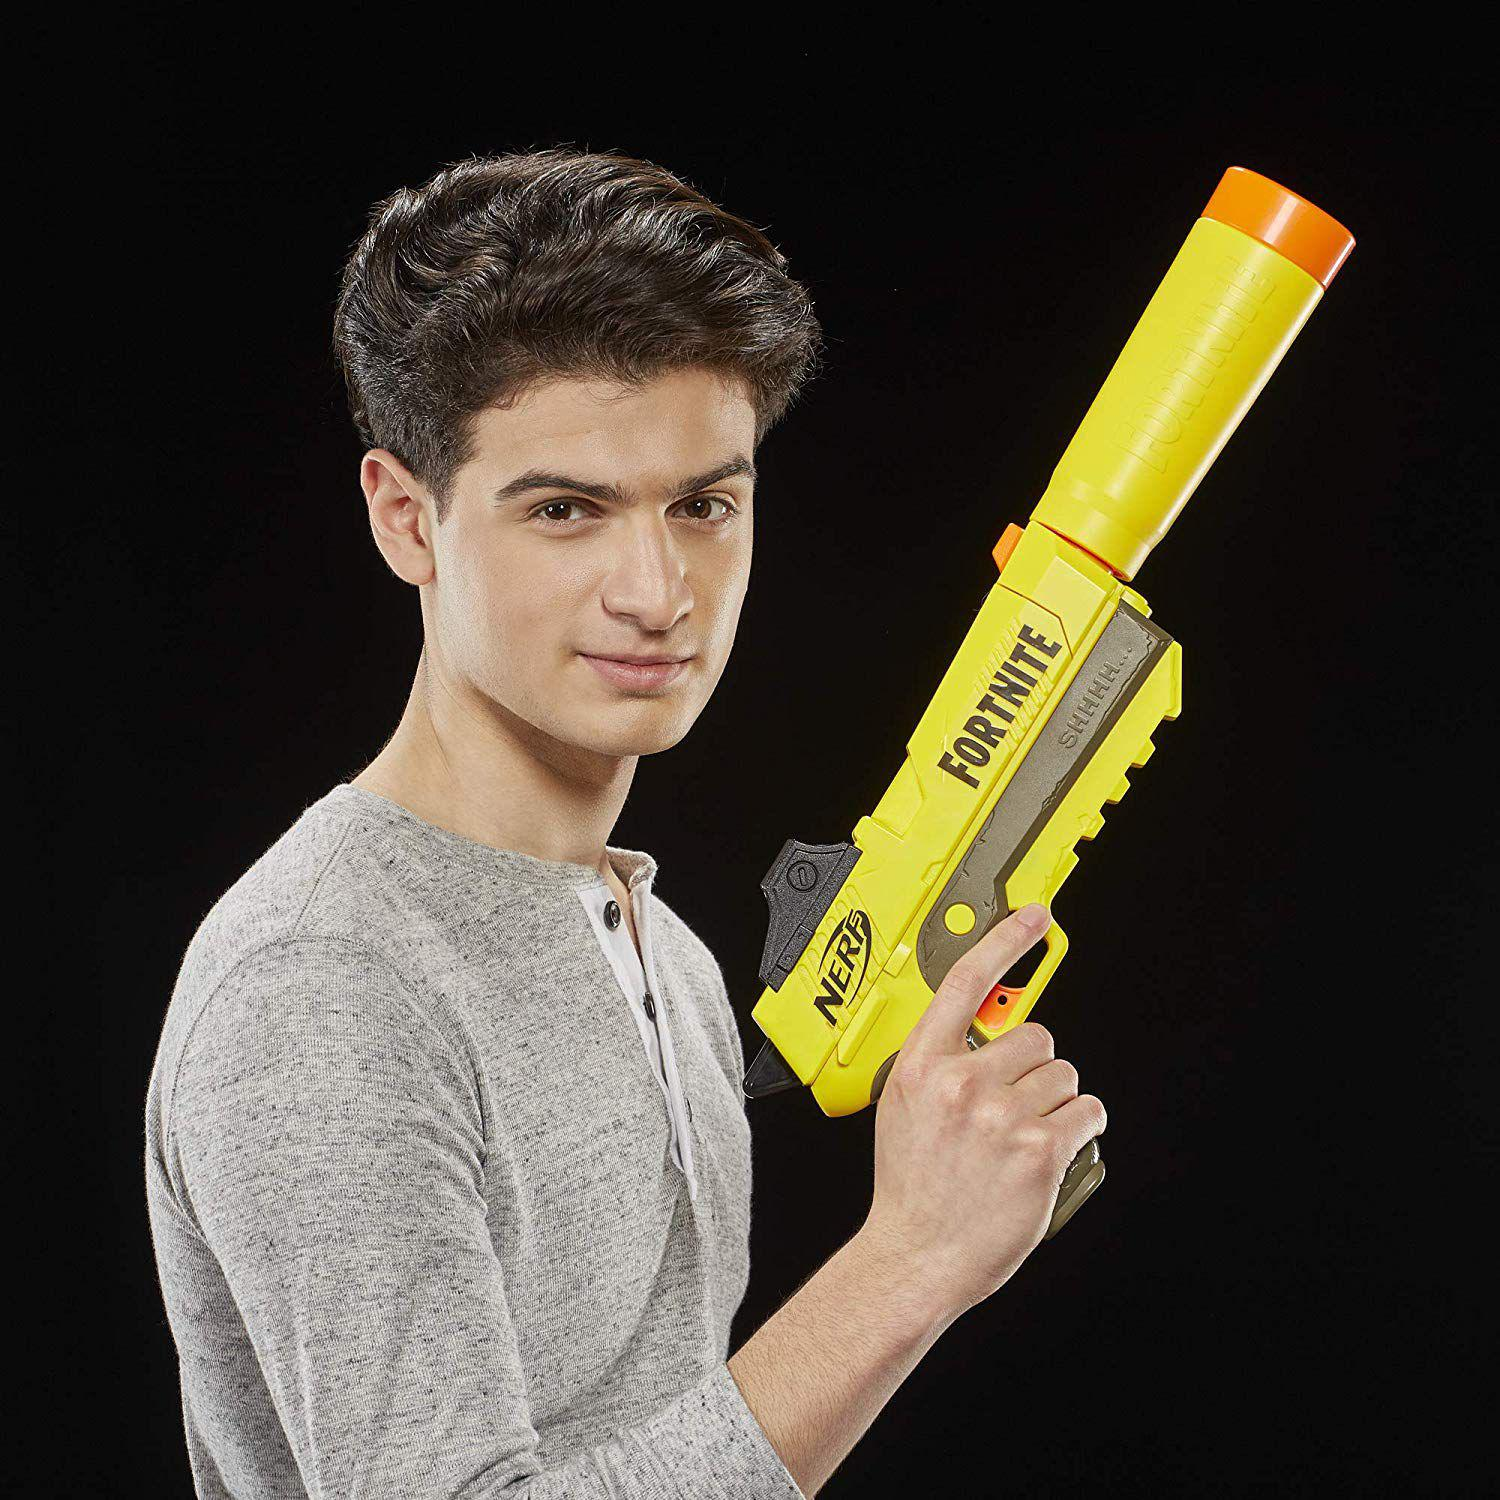 Lançador Nerf Fortnite Sneaky Springer Fall E7063 Hasbro